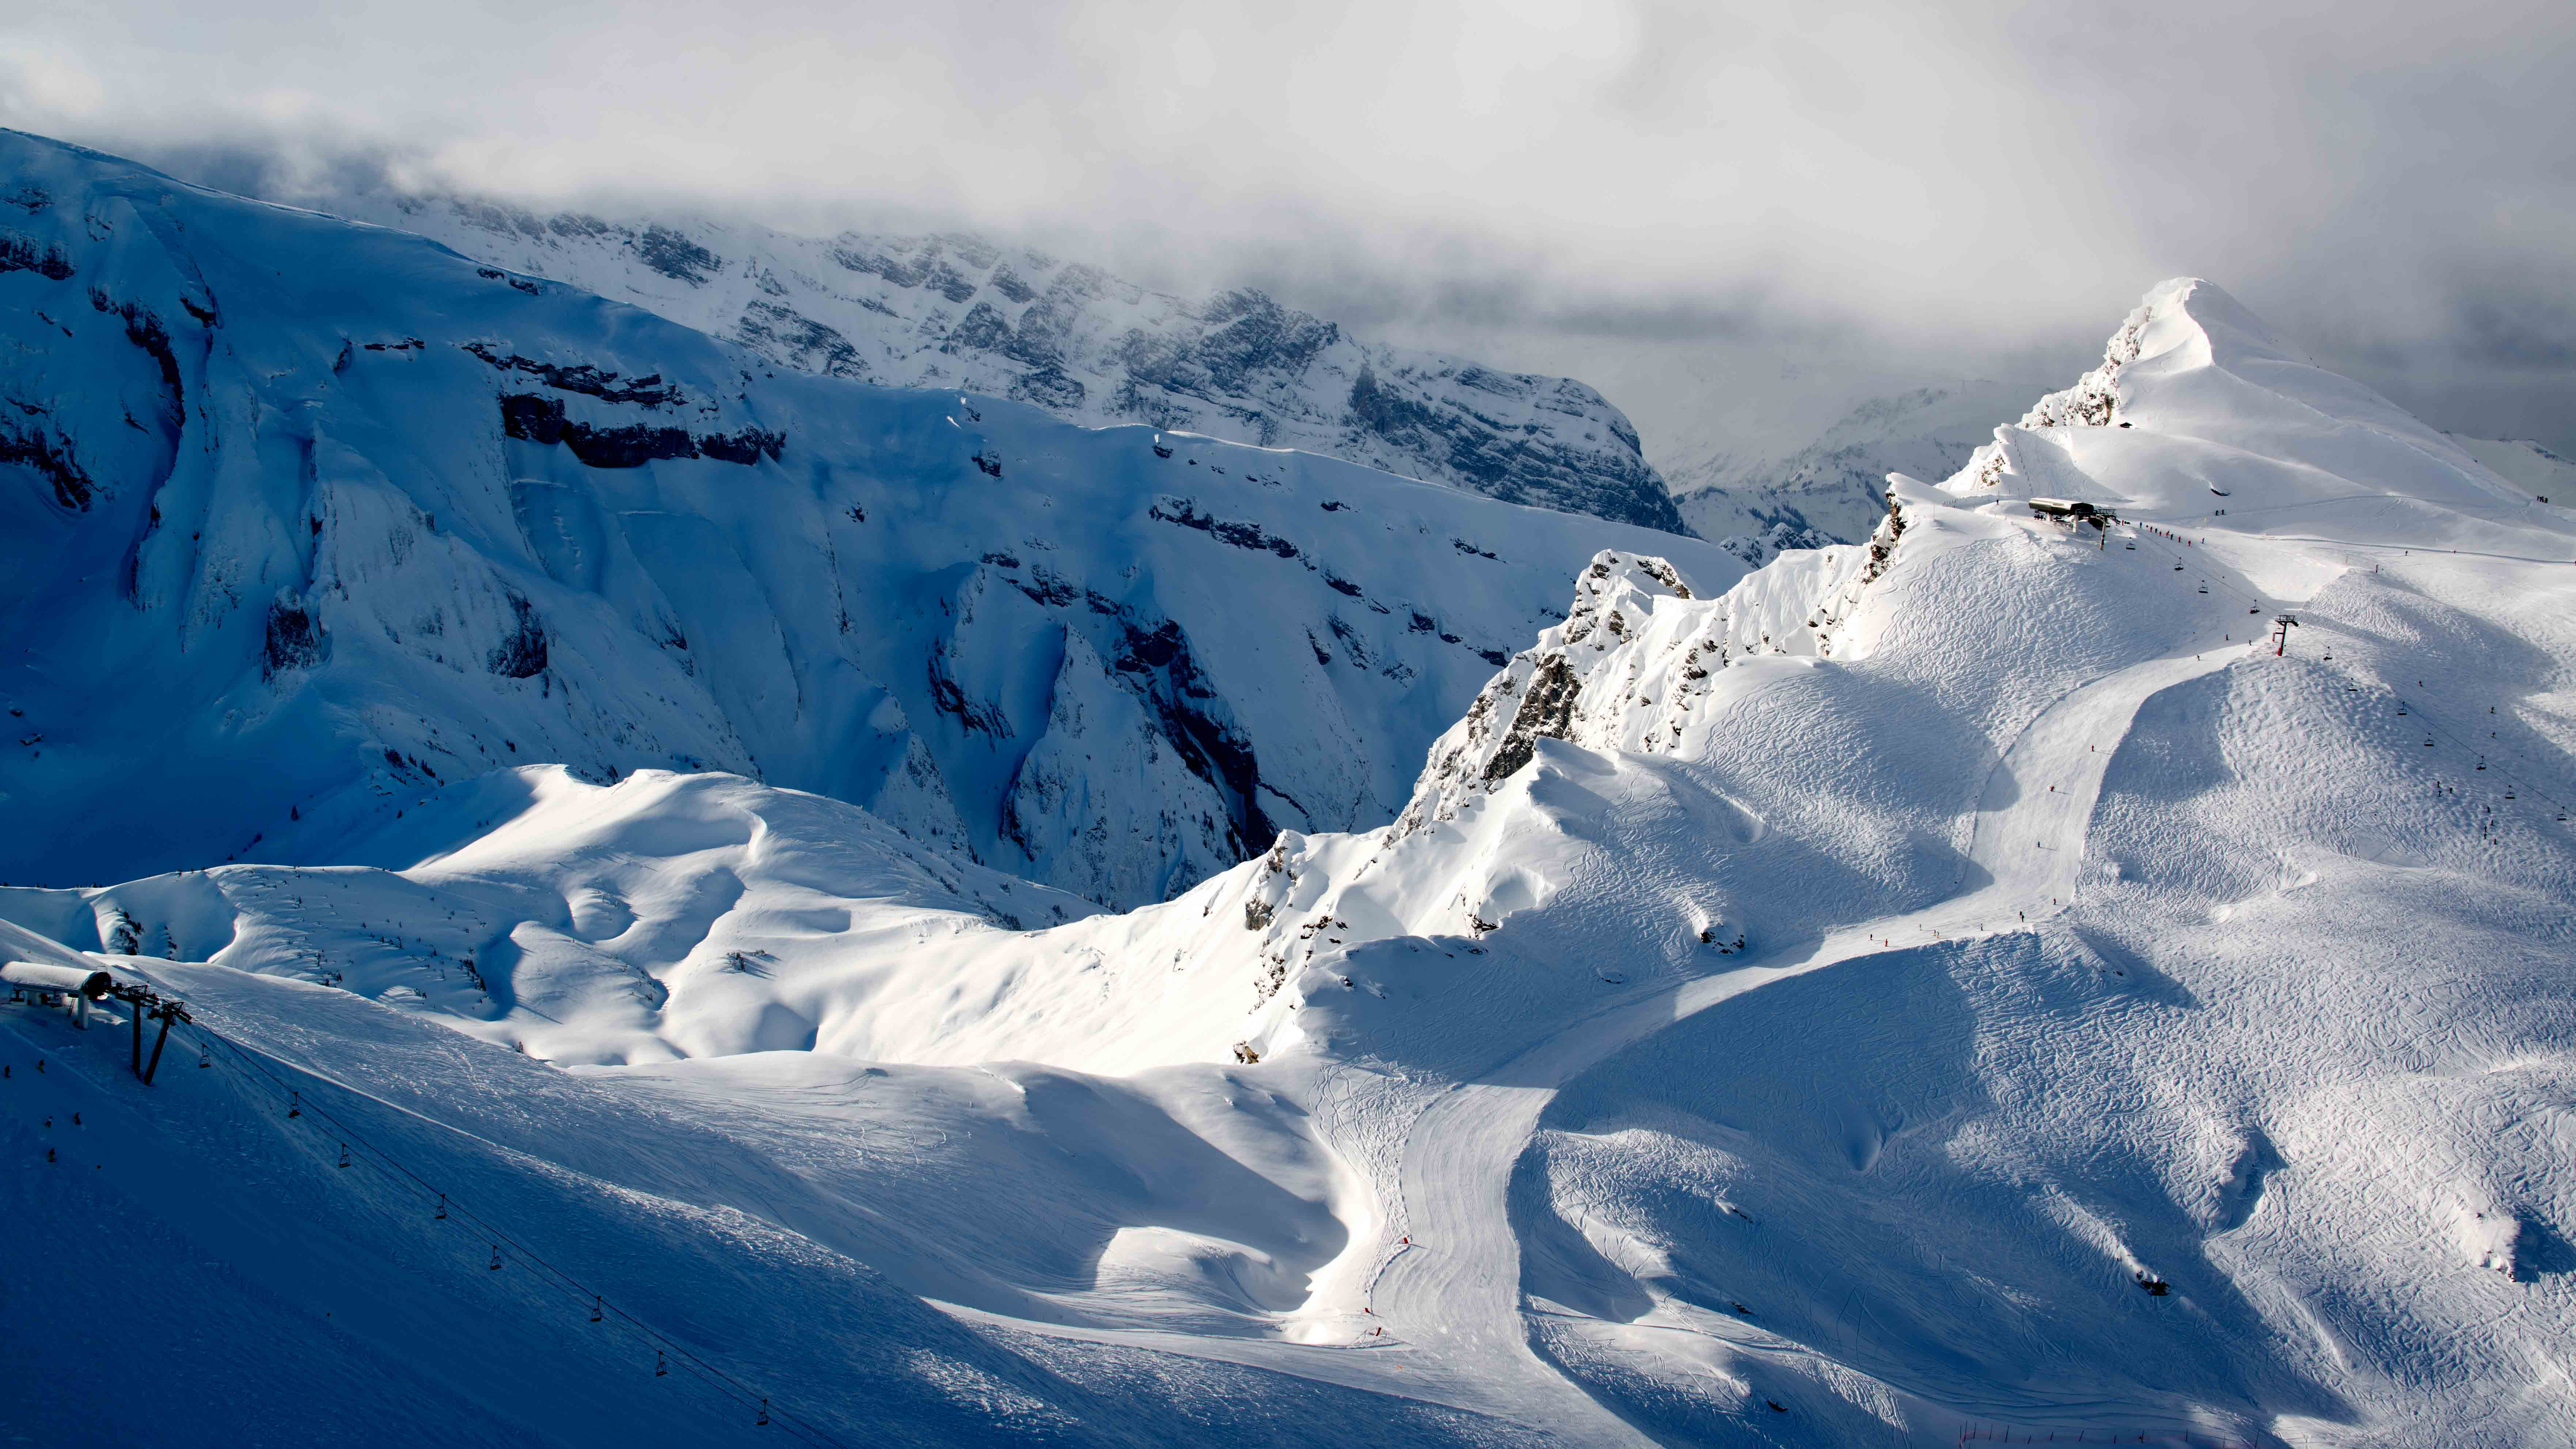 What's new in Avoriaz this winter